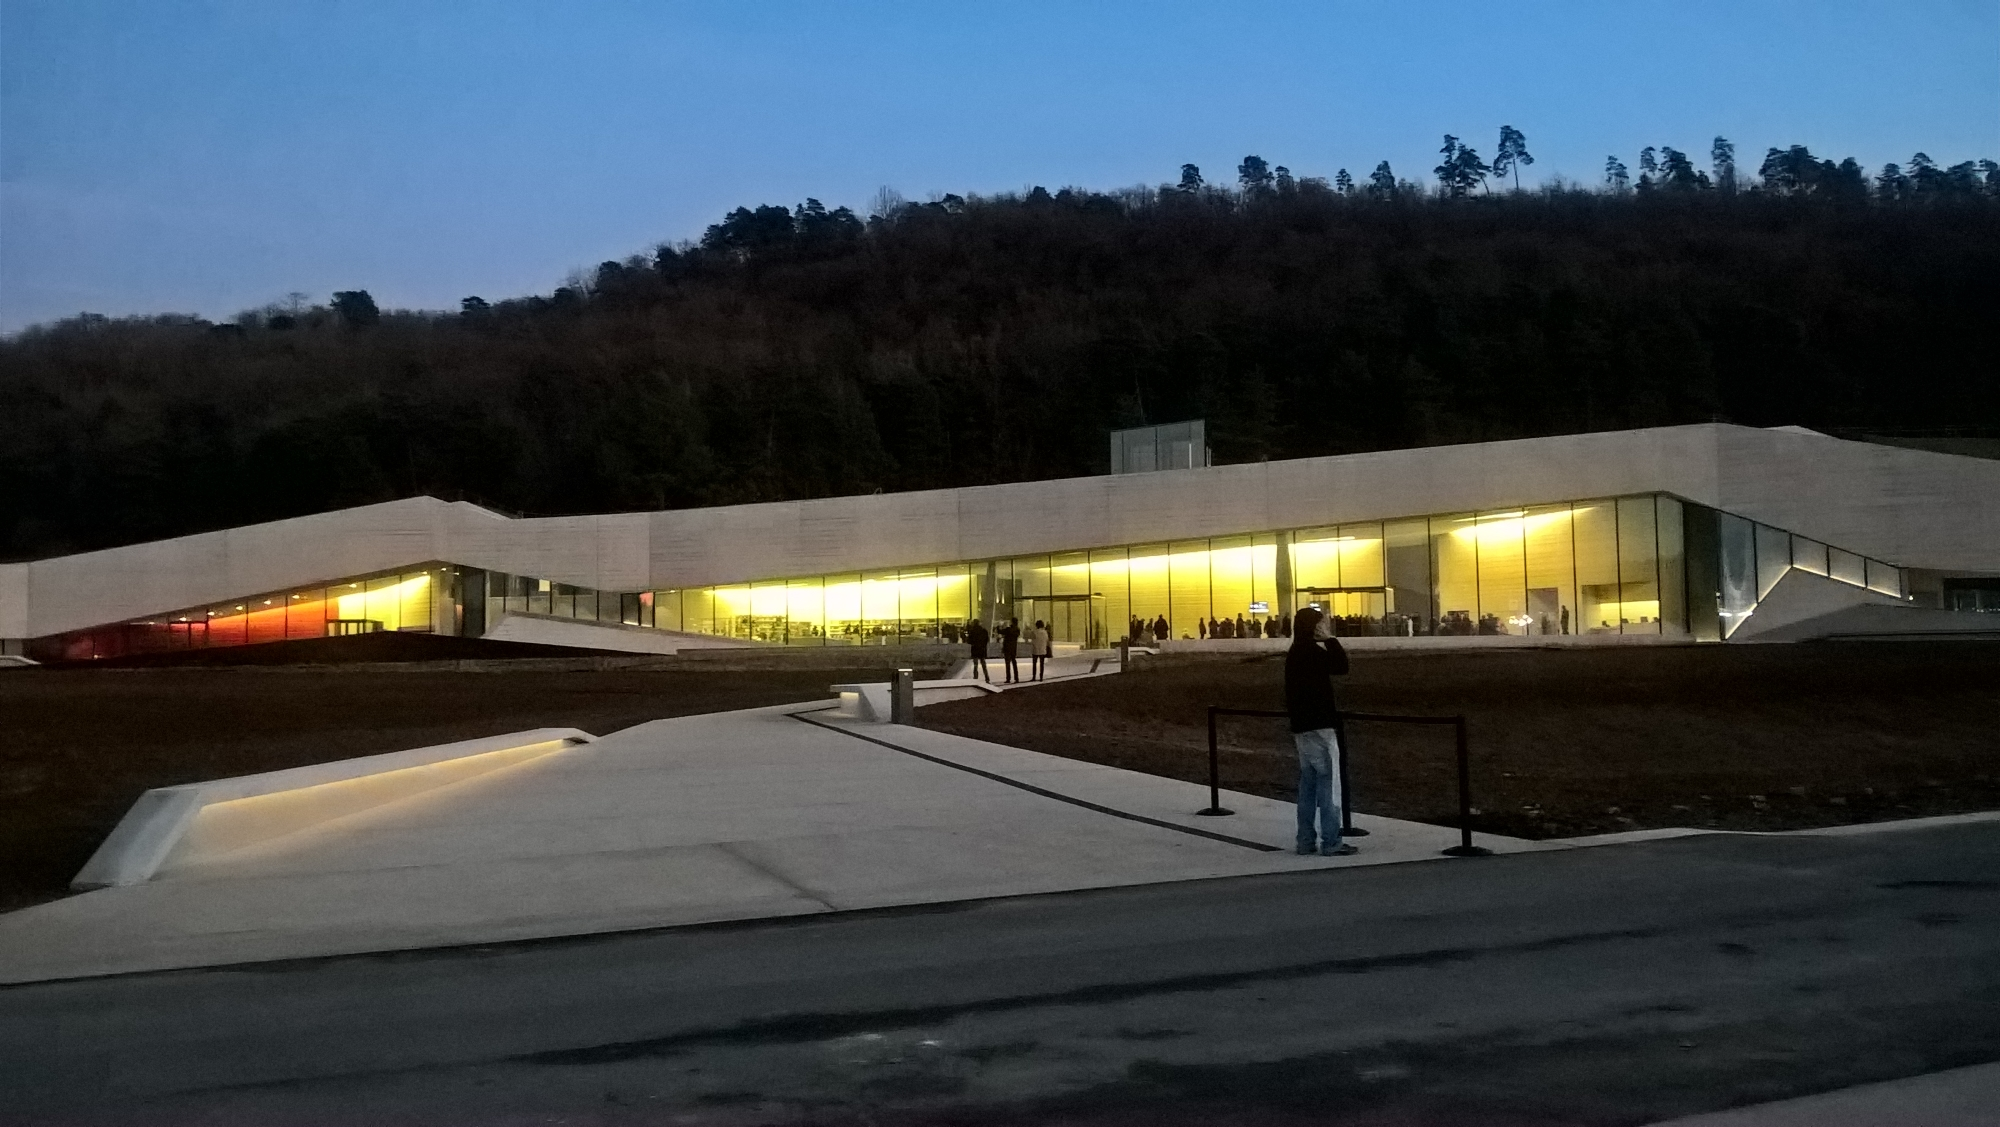 The Museum at dusk